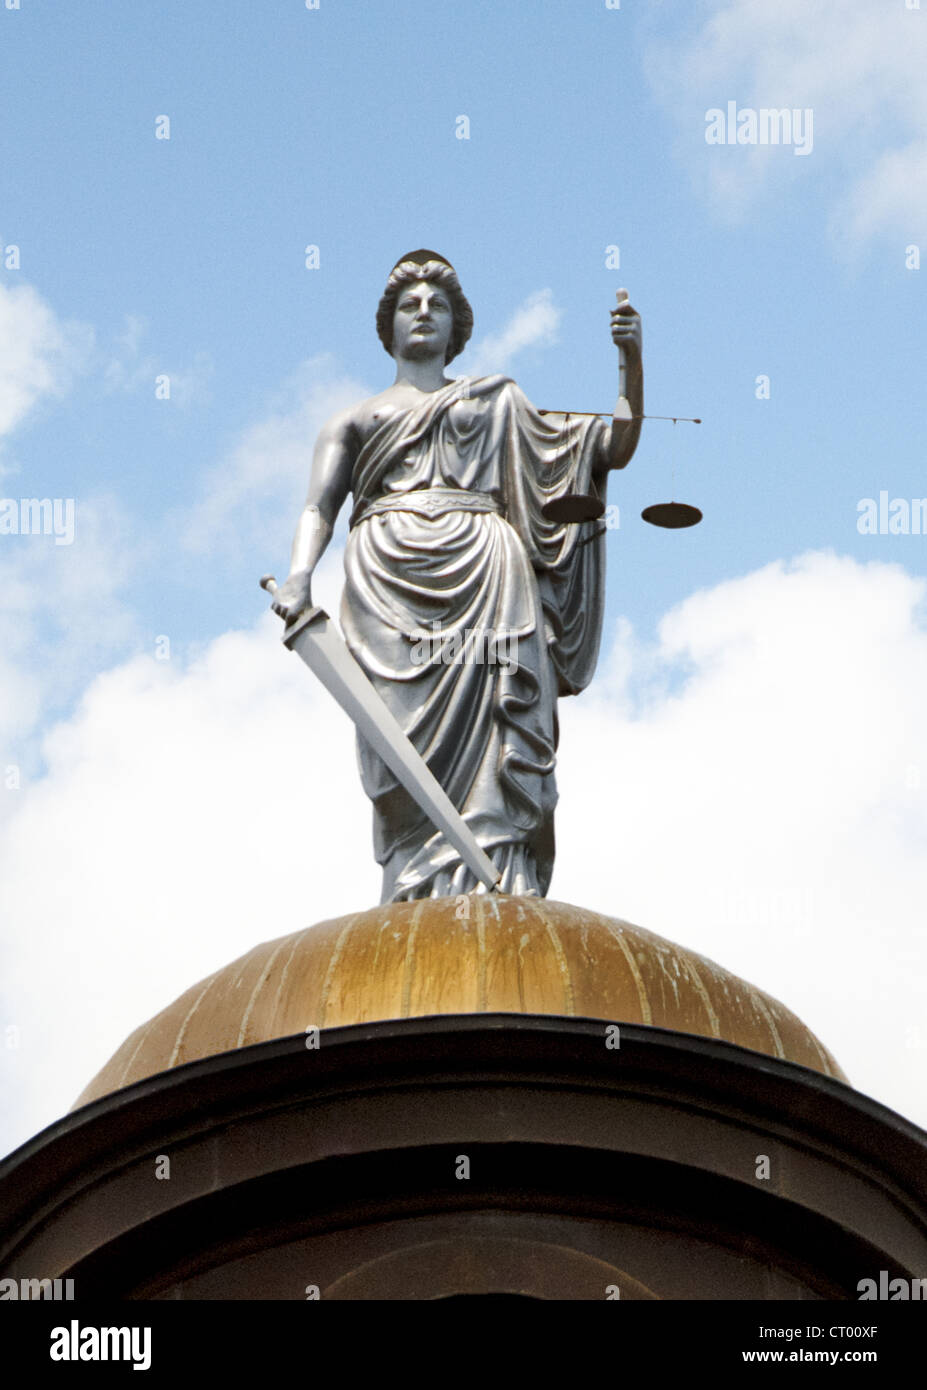 Statue of Justice on top of copper dome of 1908 Hays County Courthouse in San Marcos, Texas, USA - Stock Image